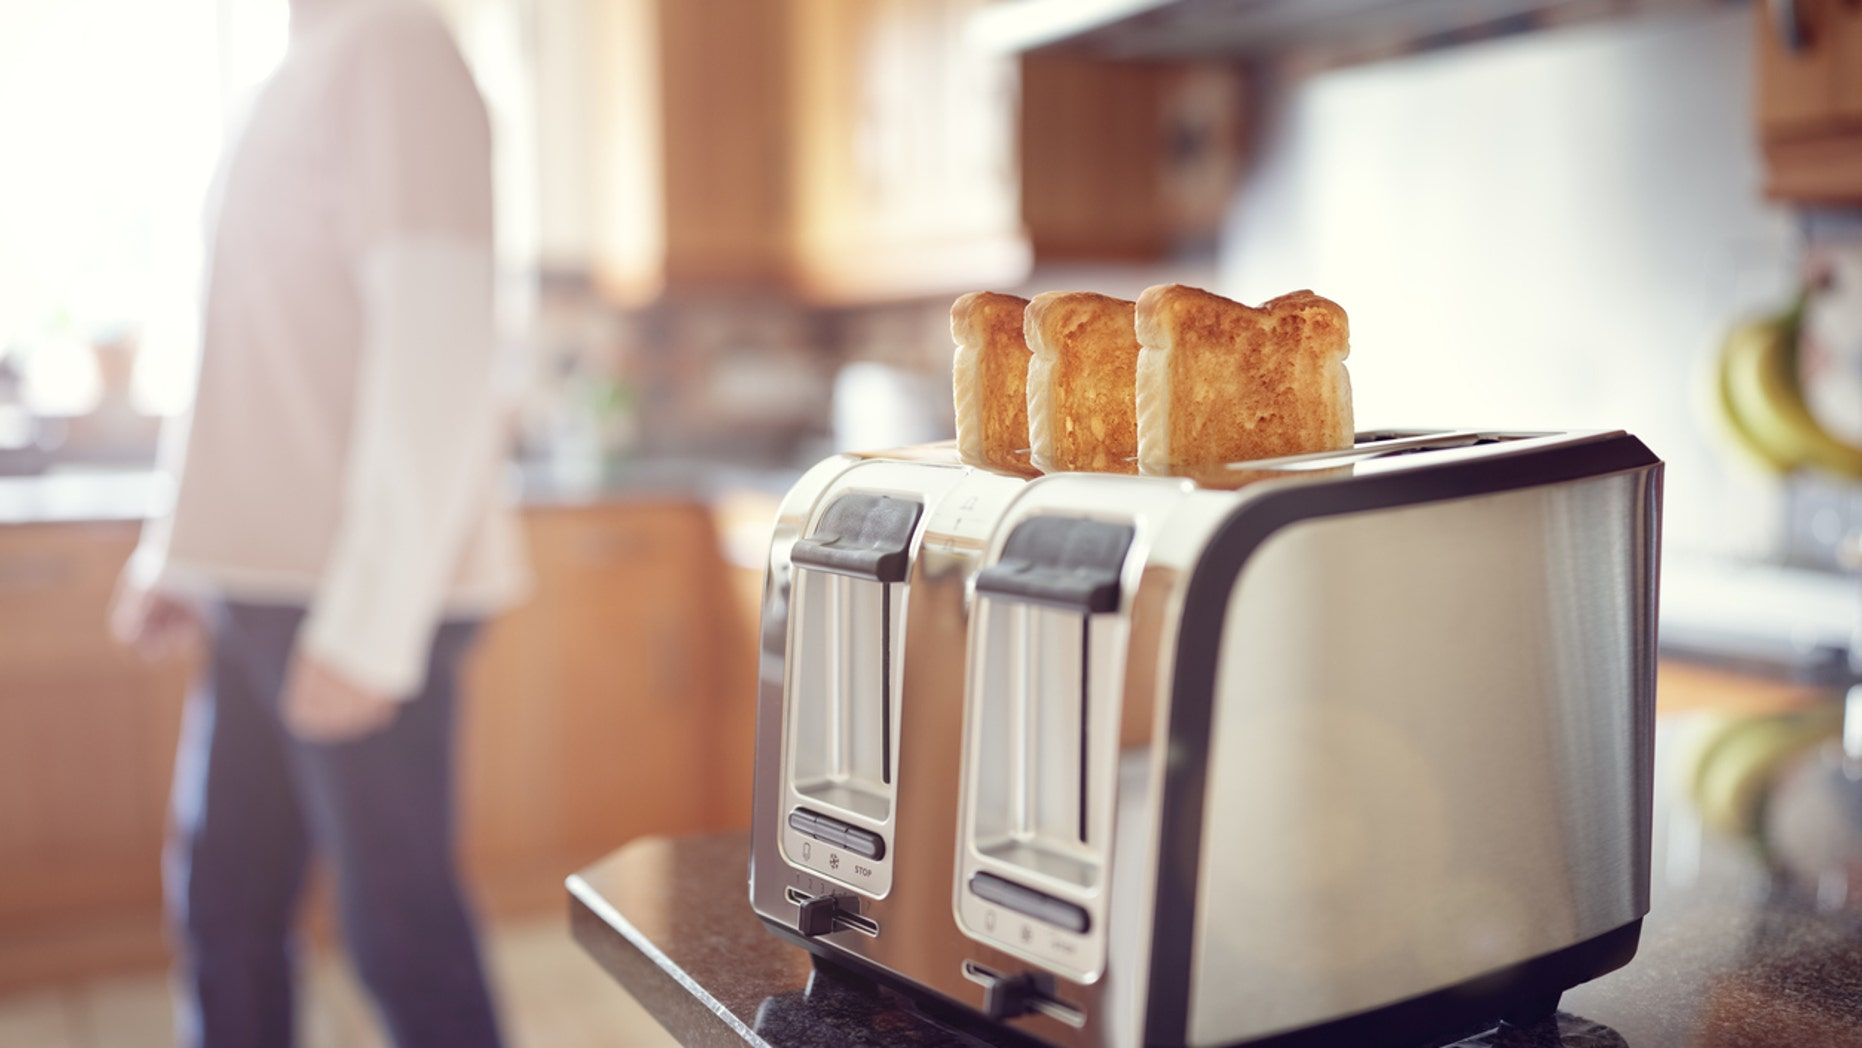 Researchers suggest only heating bread to light crisp in the toaster.